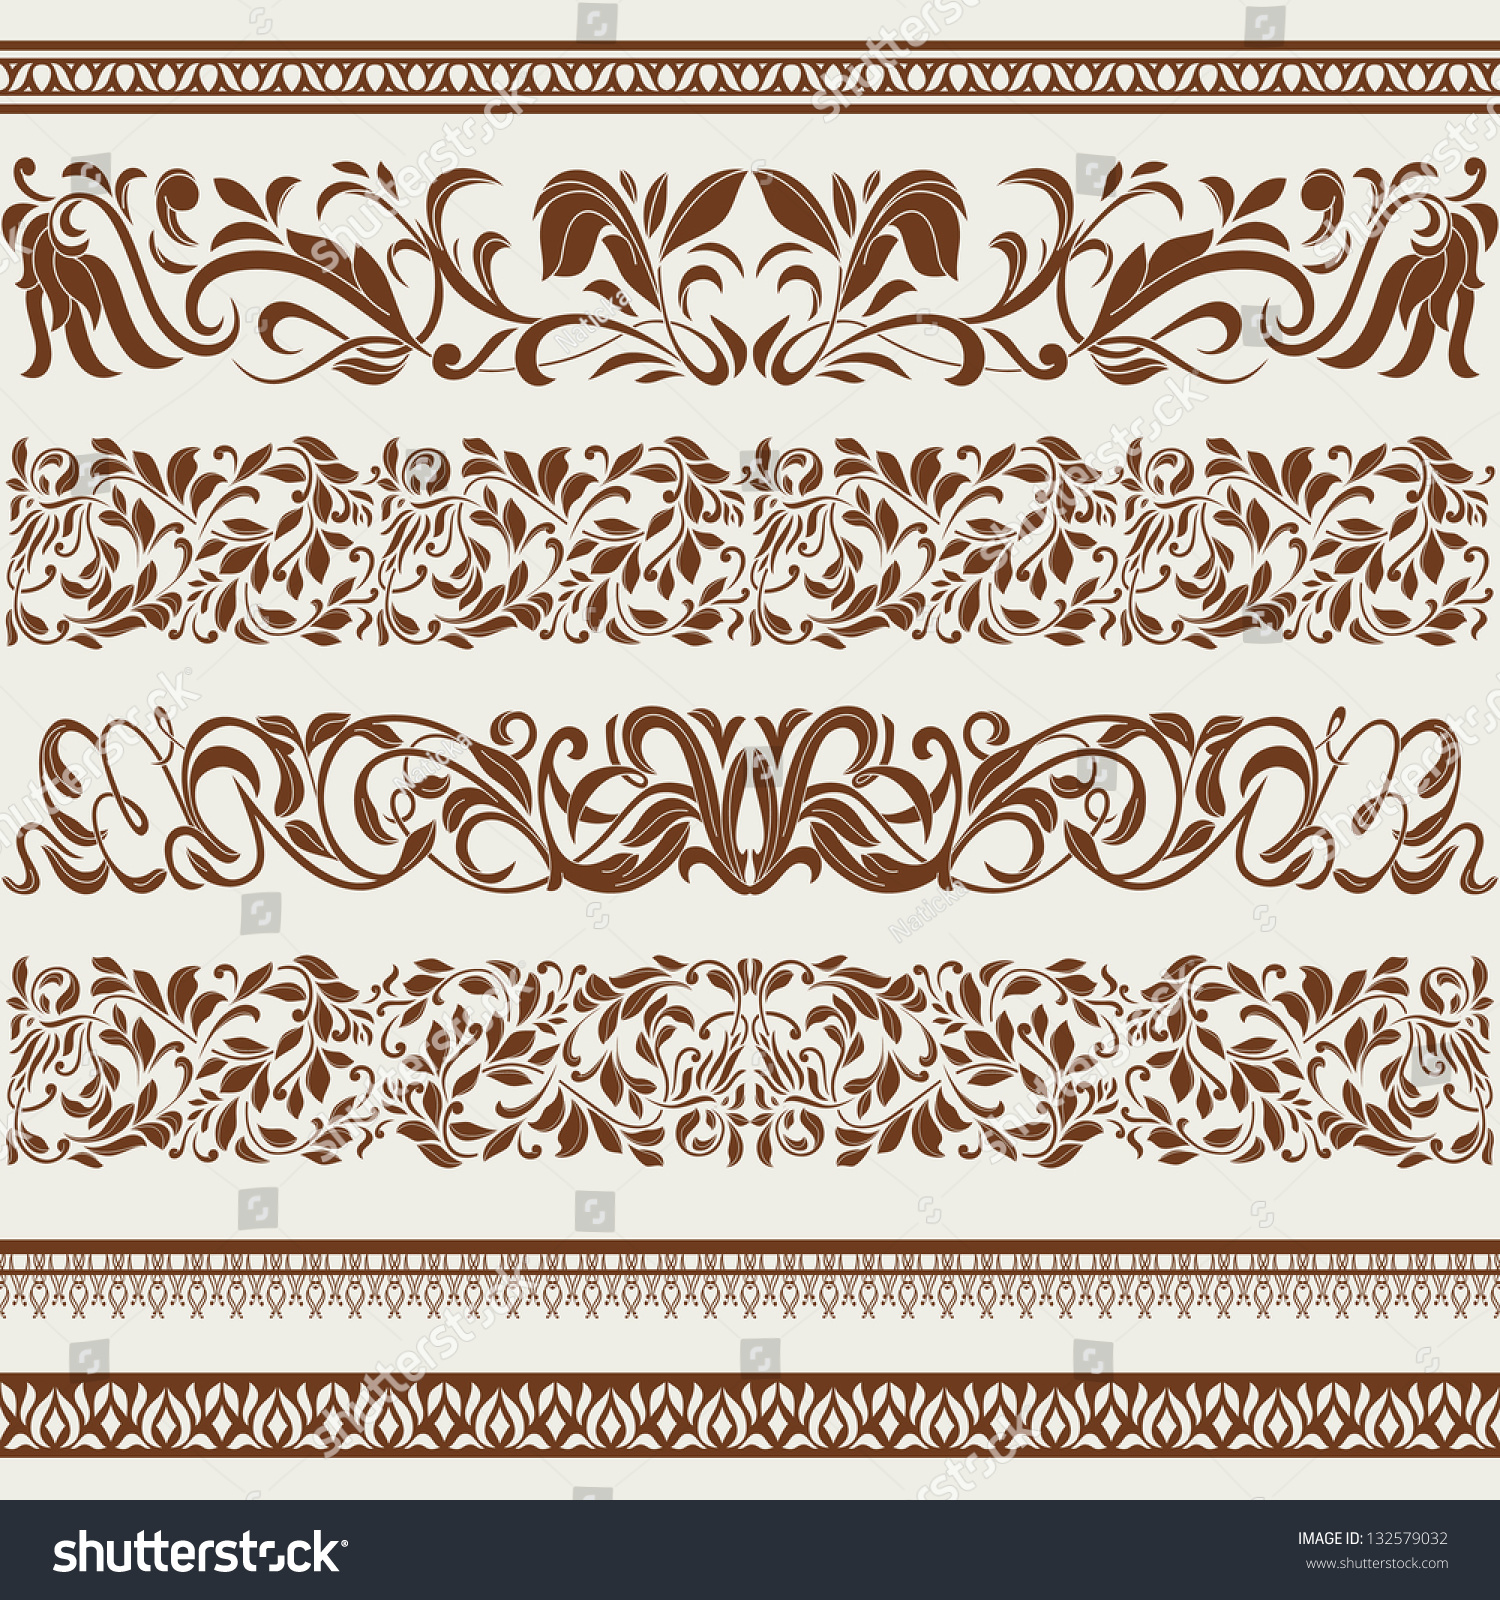 Vintage style ornaments - Set Of Borders And Ornaments In Vintage Style